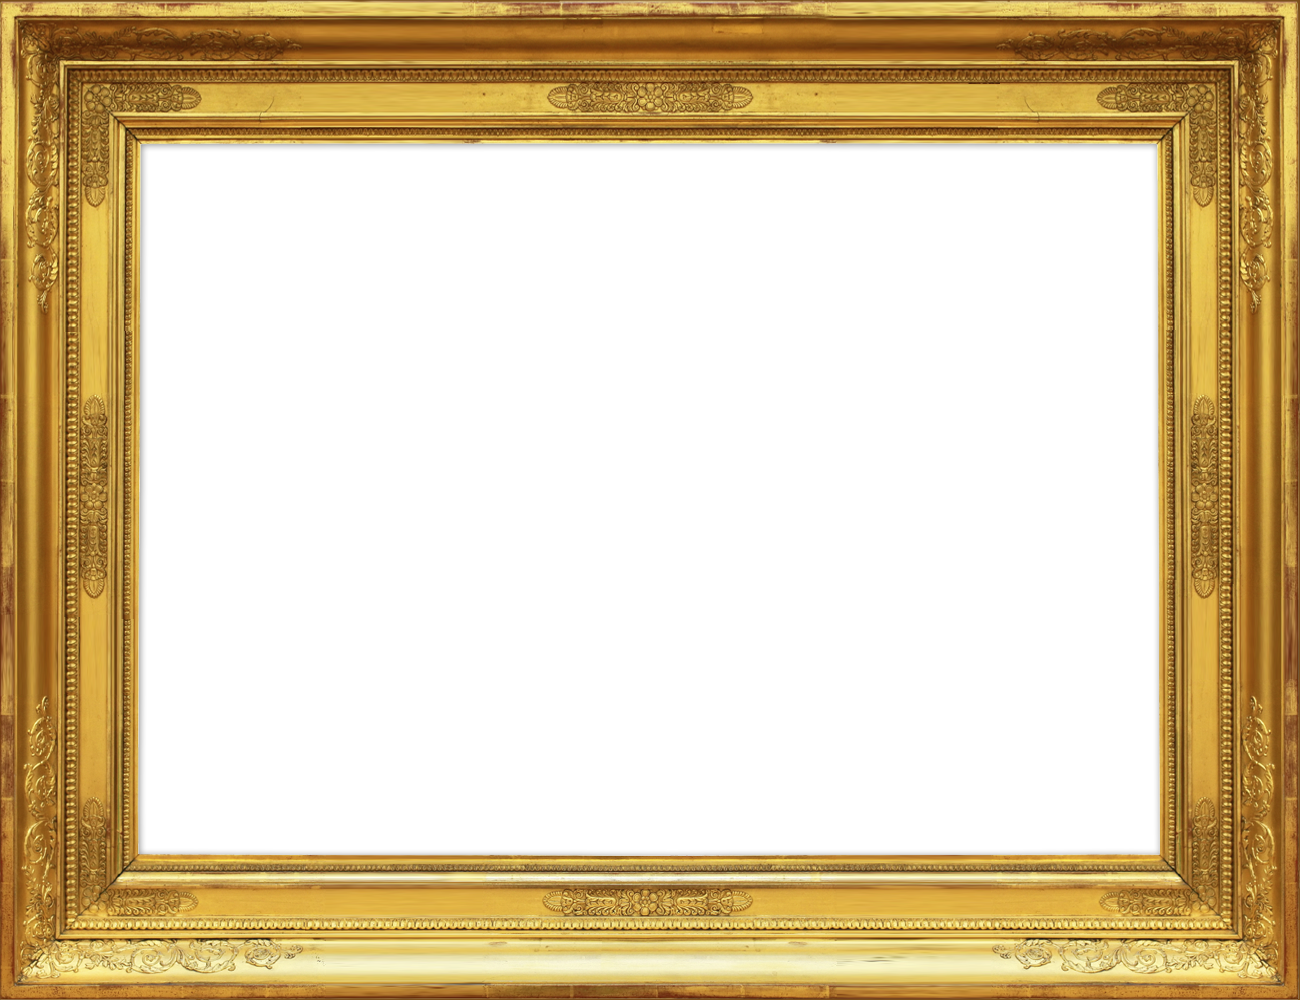 photo frame background png image 24571